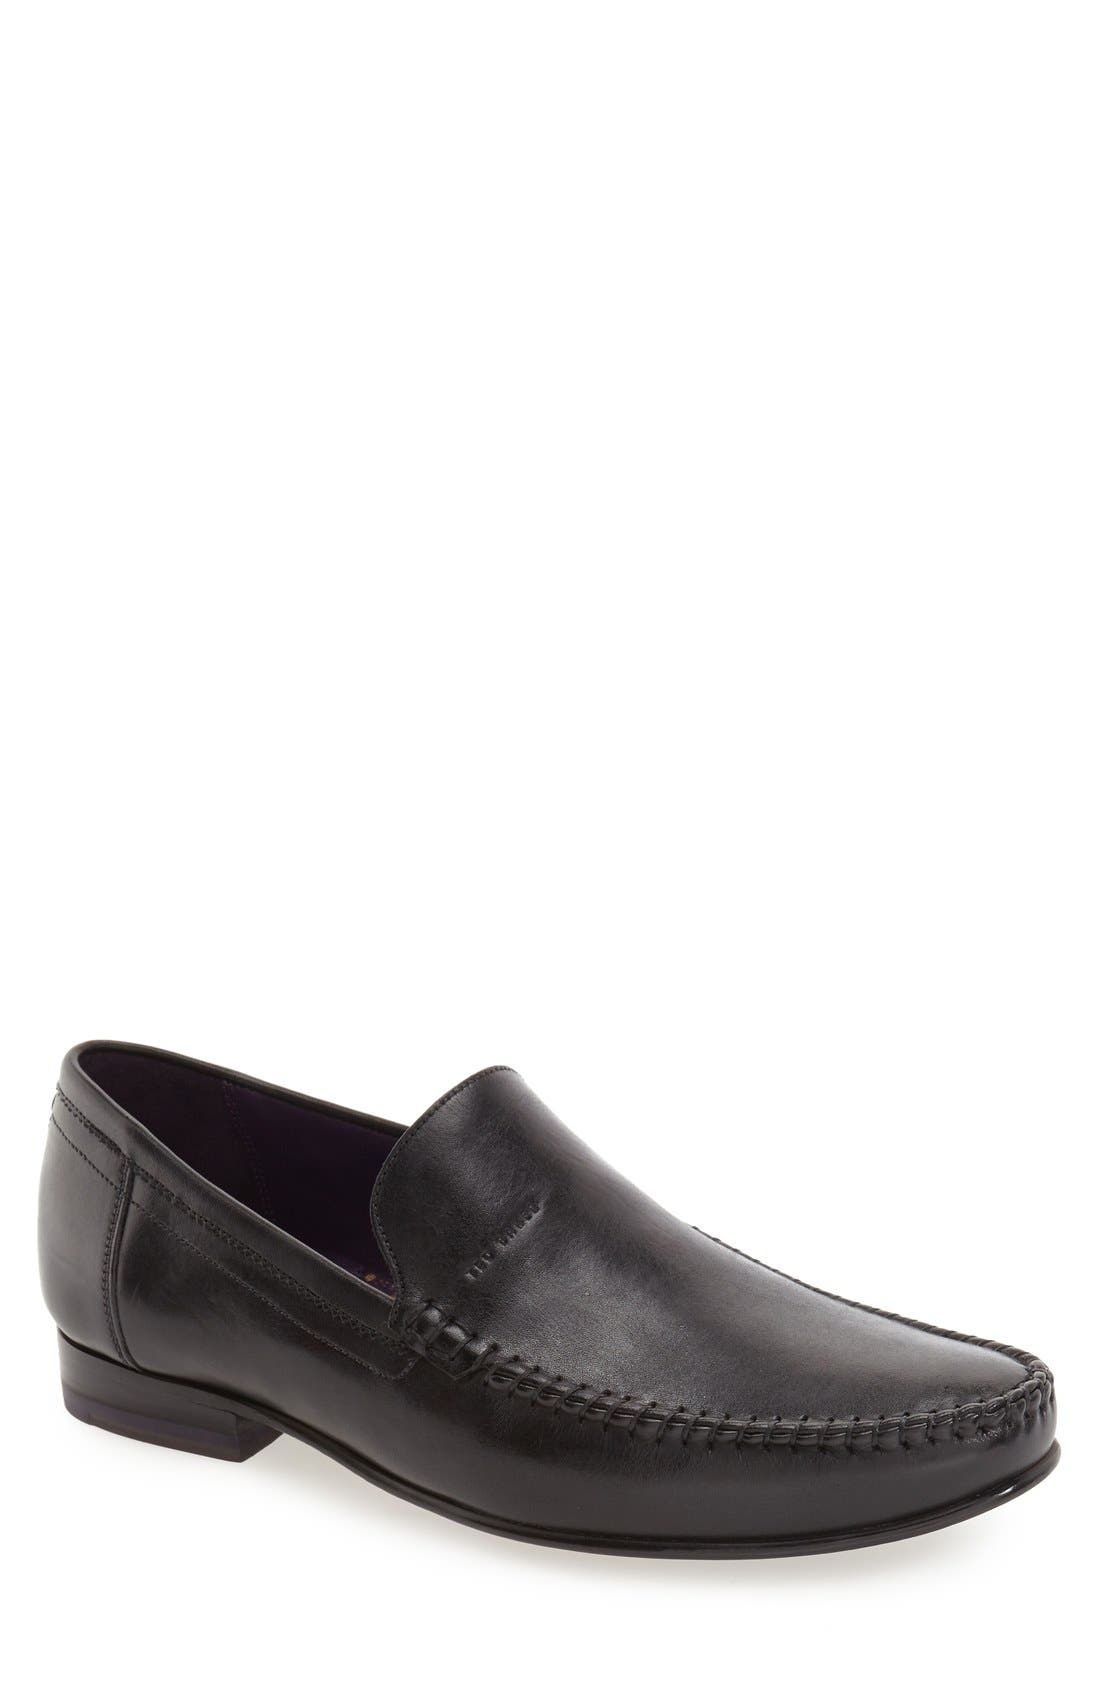 Main Image - Ted Baker London 'Simeen 3' Venetian Loafer (Men)